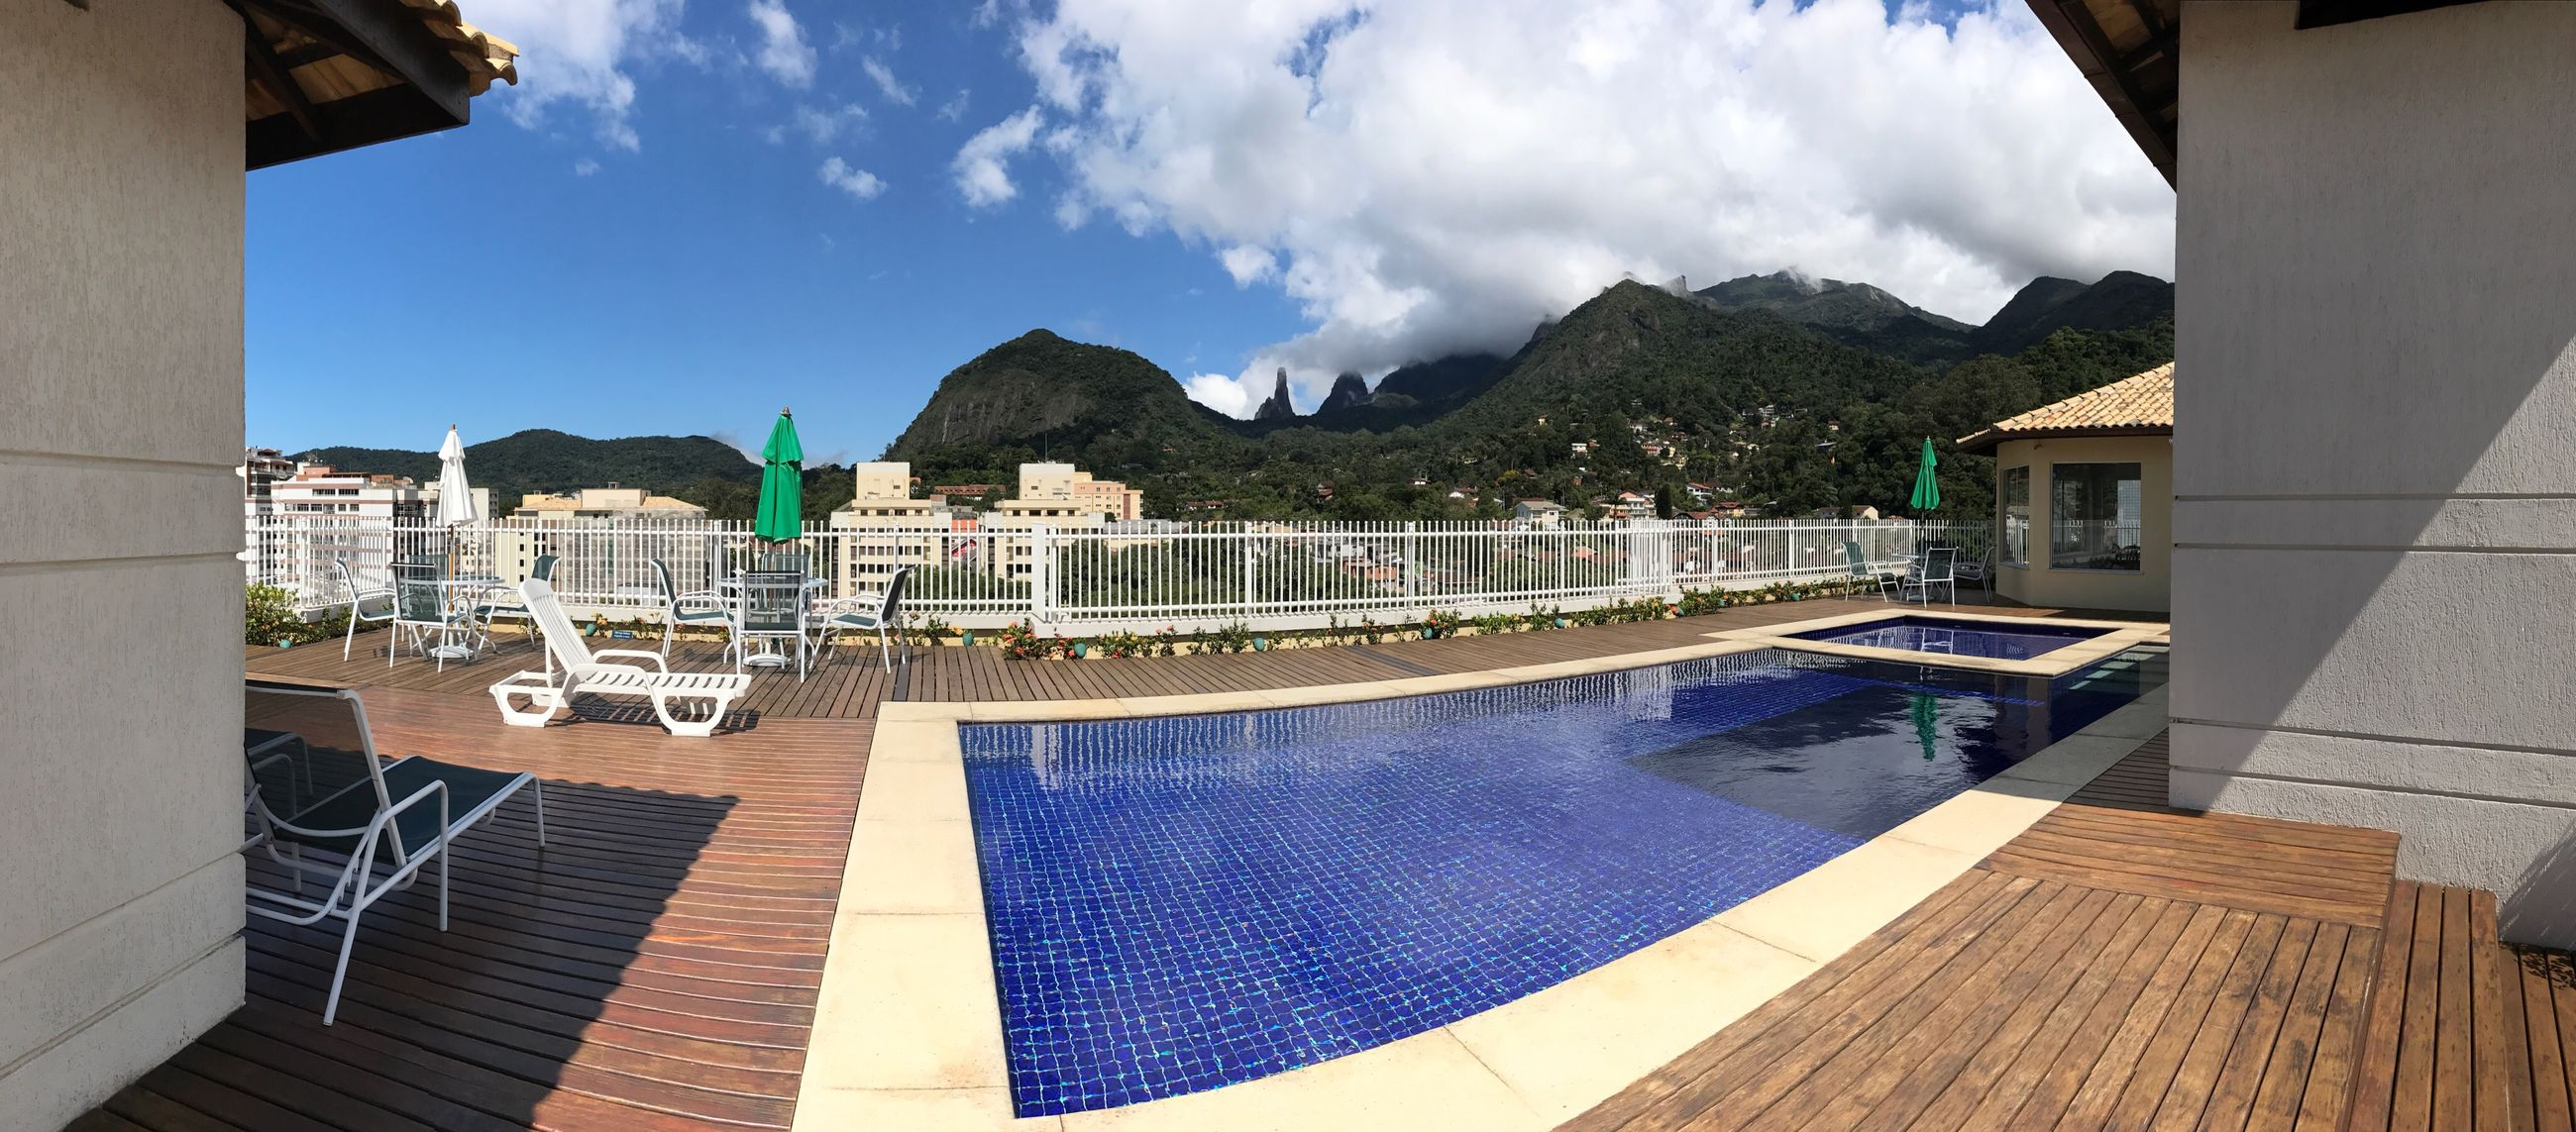 sky, building exterior, architecture, swimming pool, built structure, chair, cloud - sky, outdoors, no people, mountain, tree, day, water, building terrace